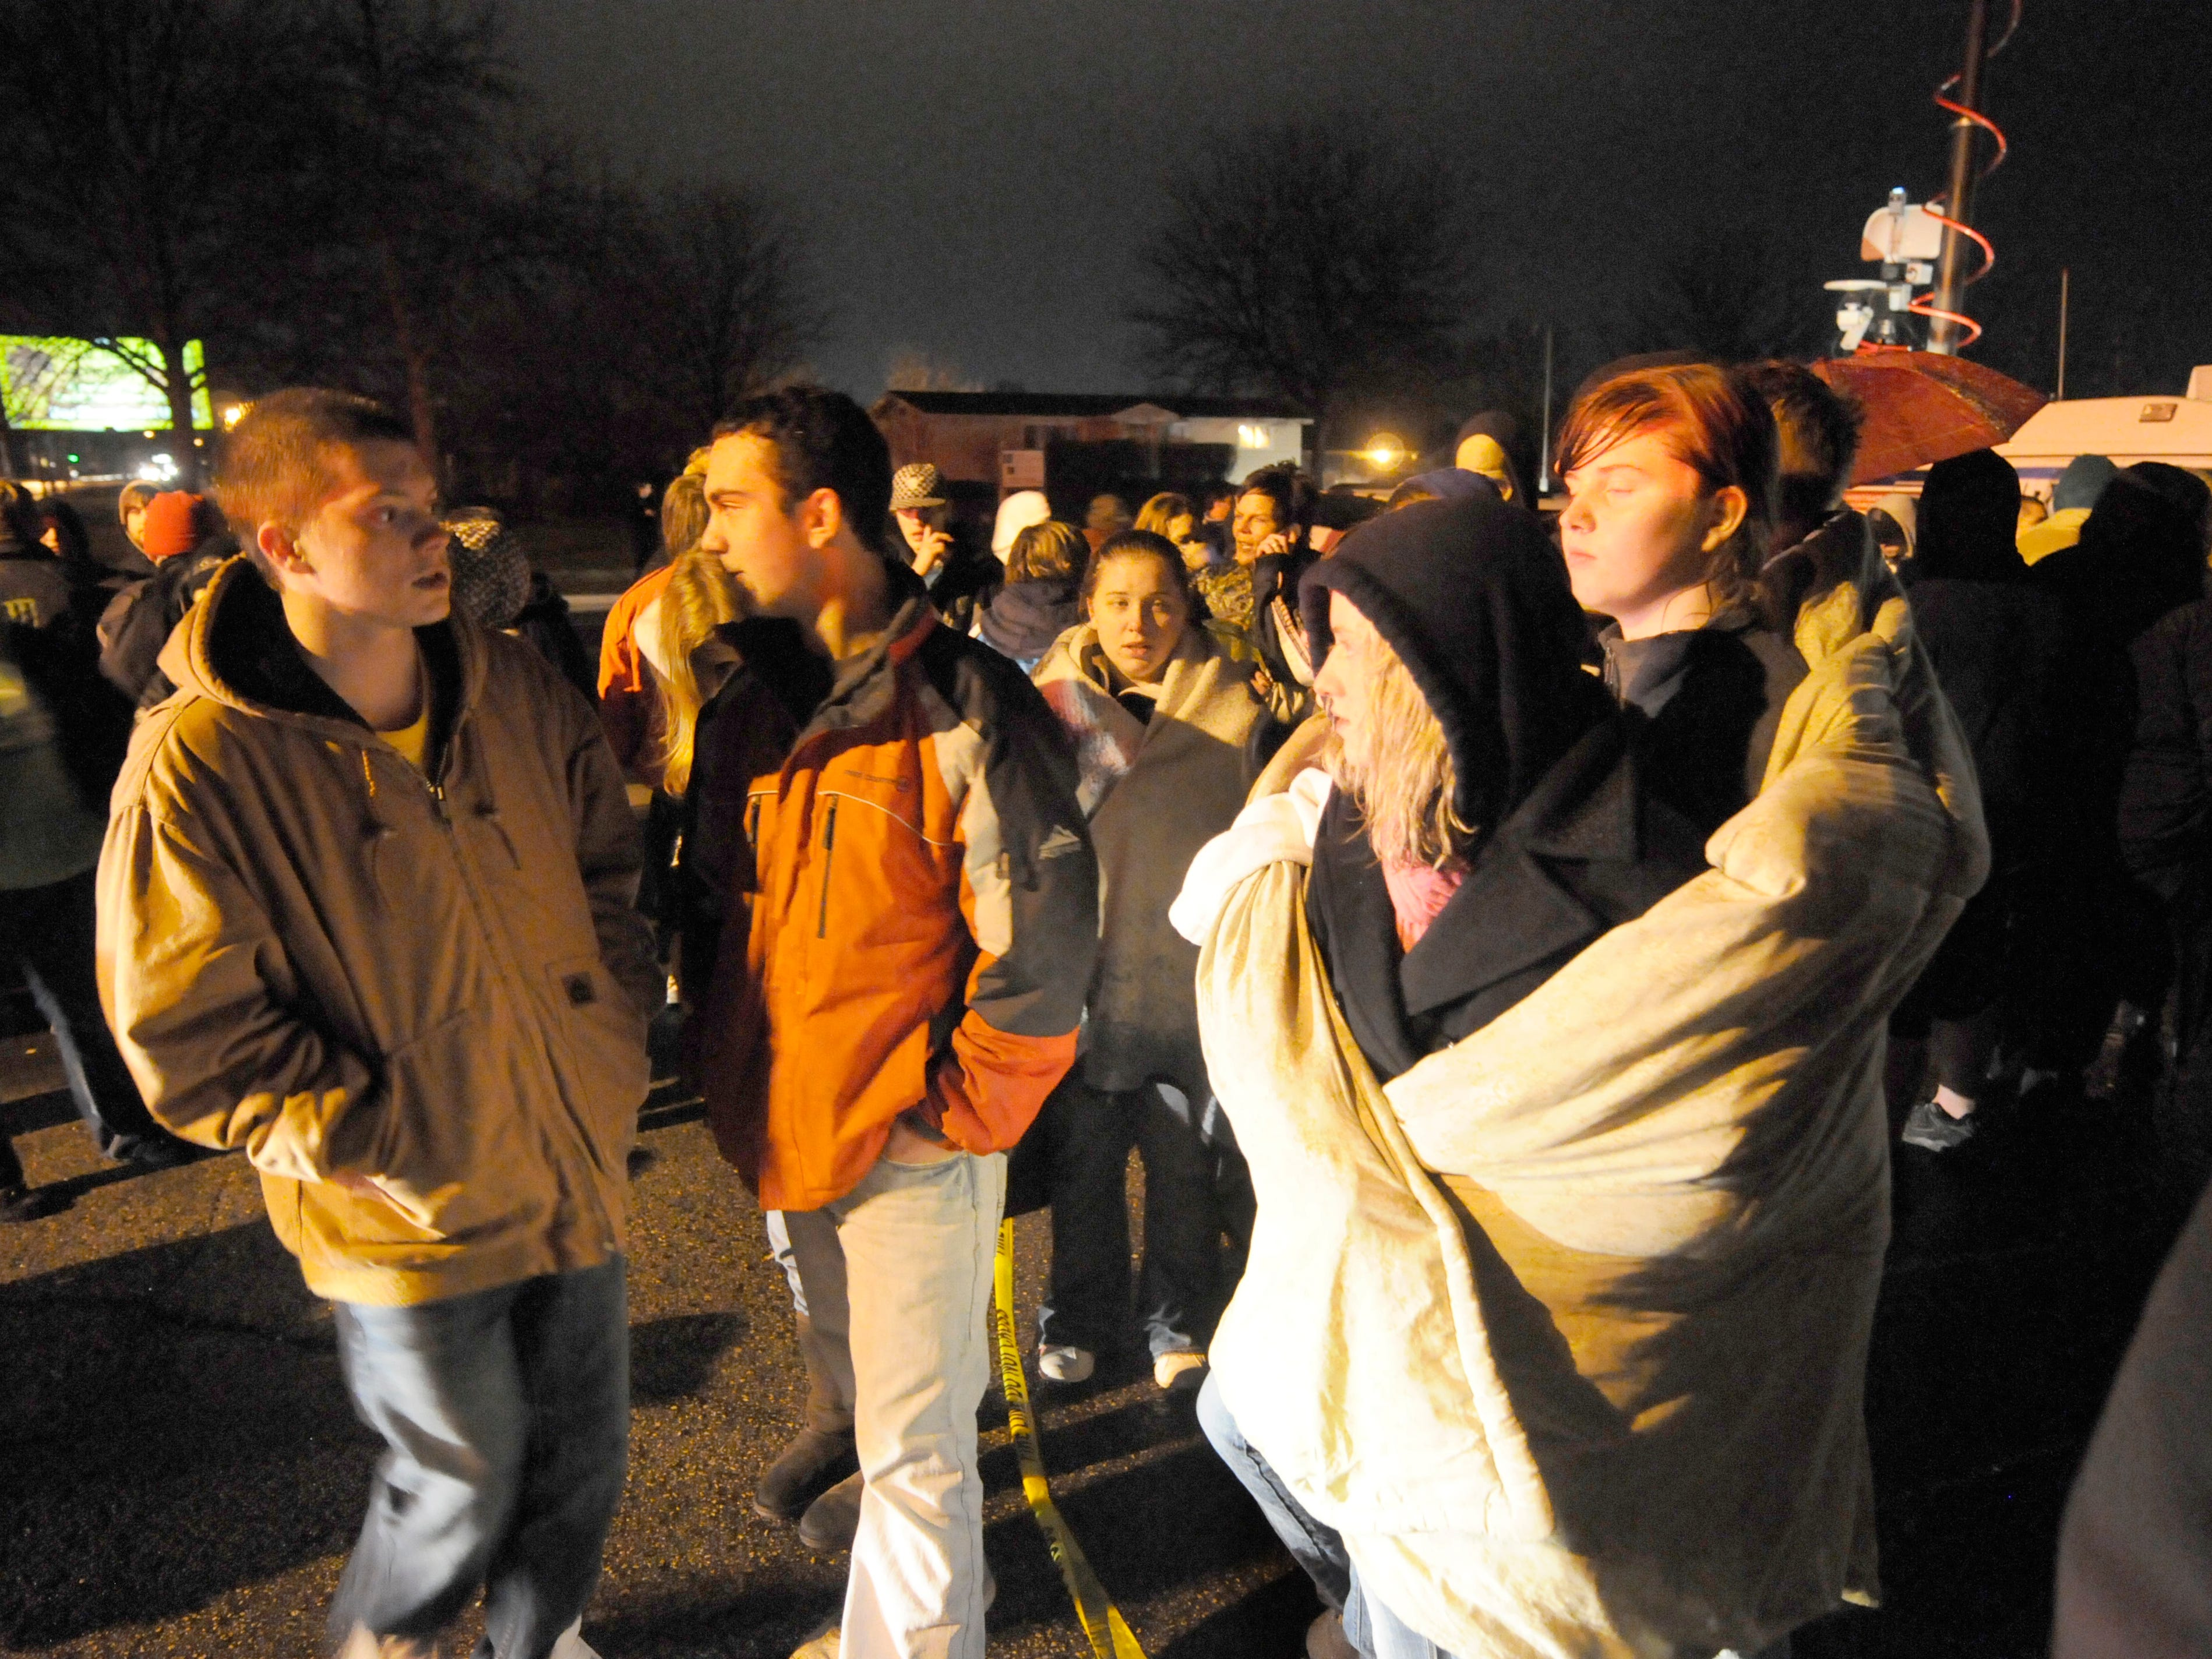 Marinette High School students hold a vigil in a parking lot near the school as they wait for word on the 23 hostages being held in Marinette Monday, November 29, 2010. Caitlin Peterson, right, huddles in the rain with Brittany Padgett. Jim Matthews/Press-Gazette